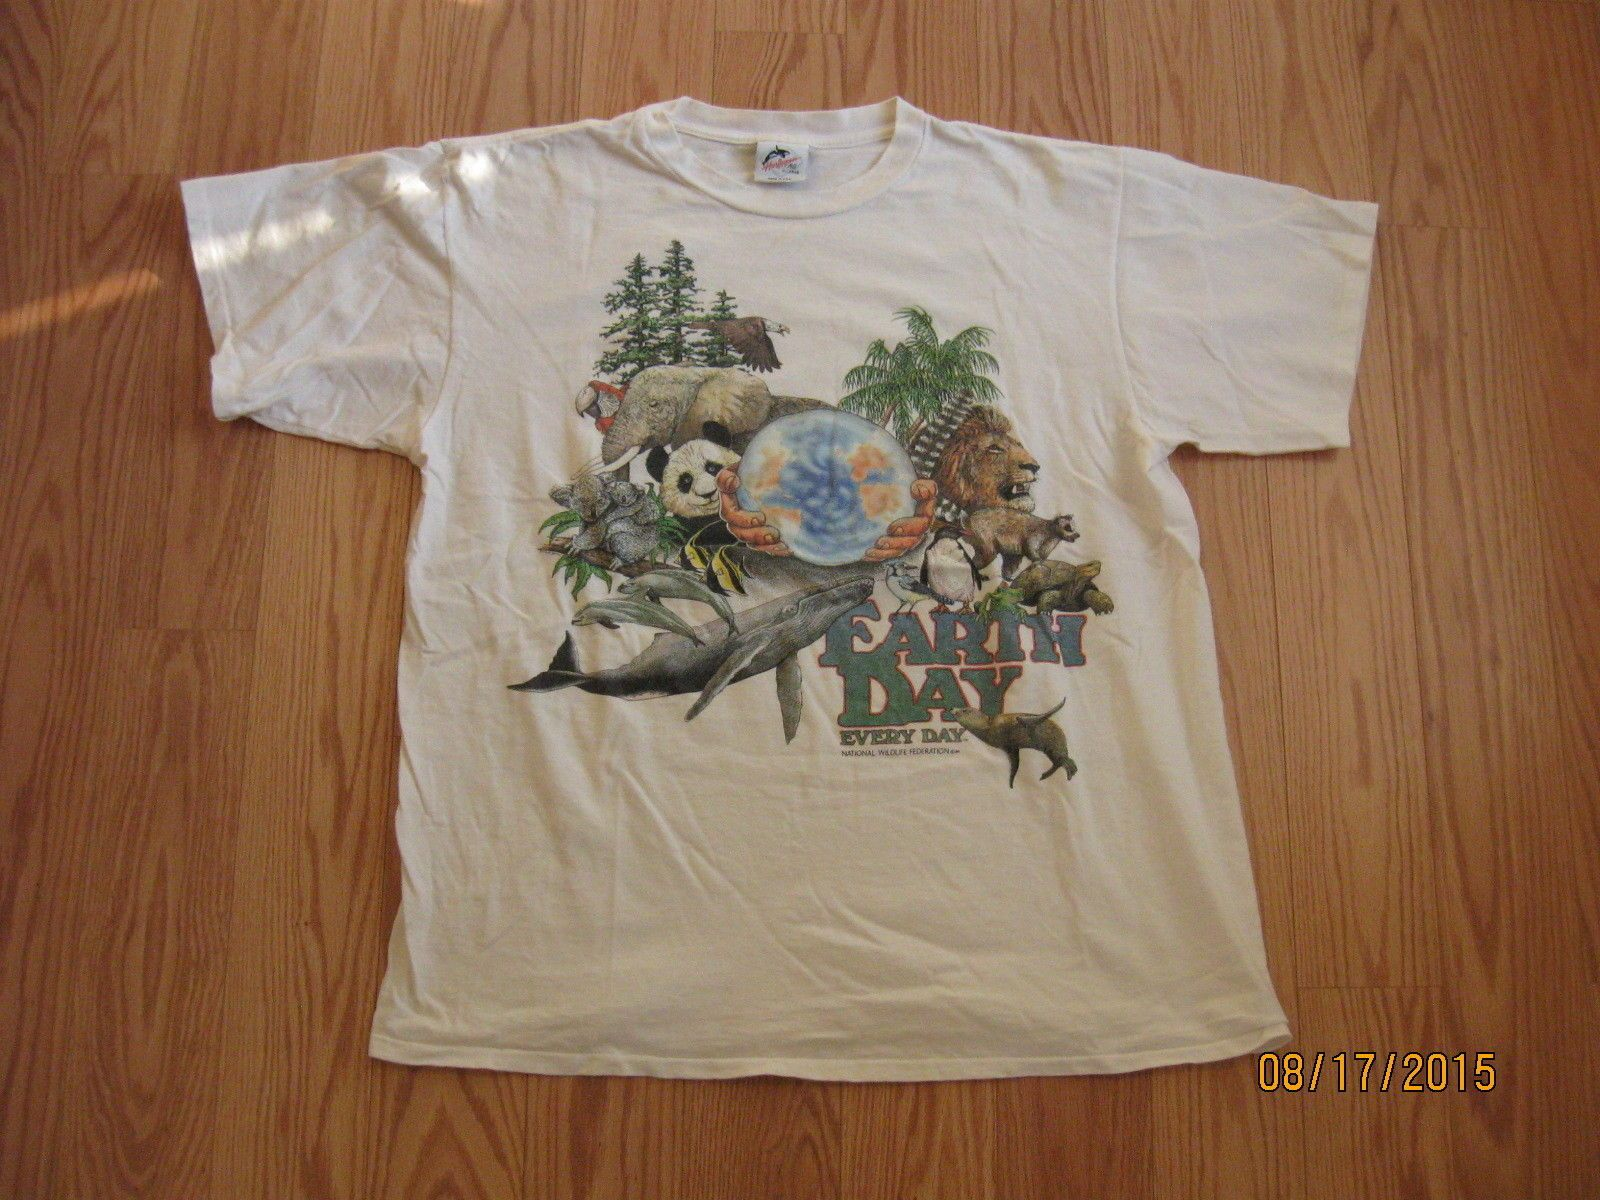 T shirt white ebay - National Wildlife Federation Earth Day Every Day 1989 Graphic T Shirt Xl Vintage Ebay